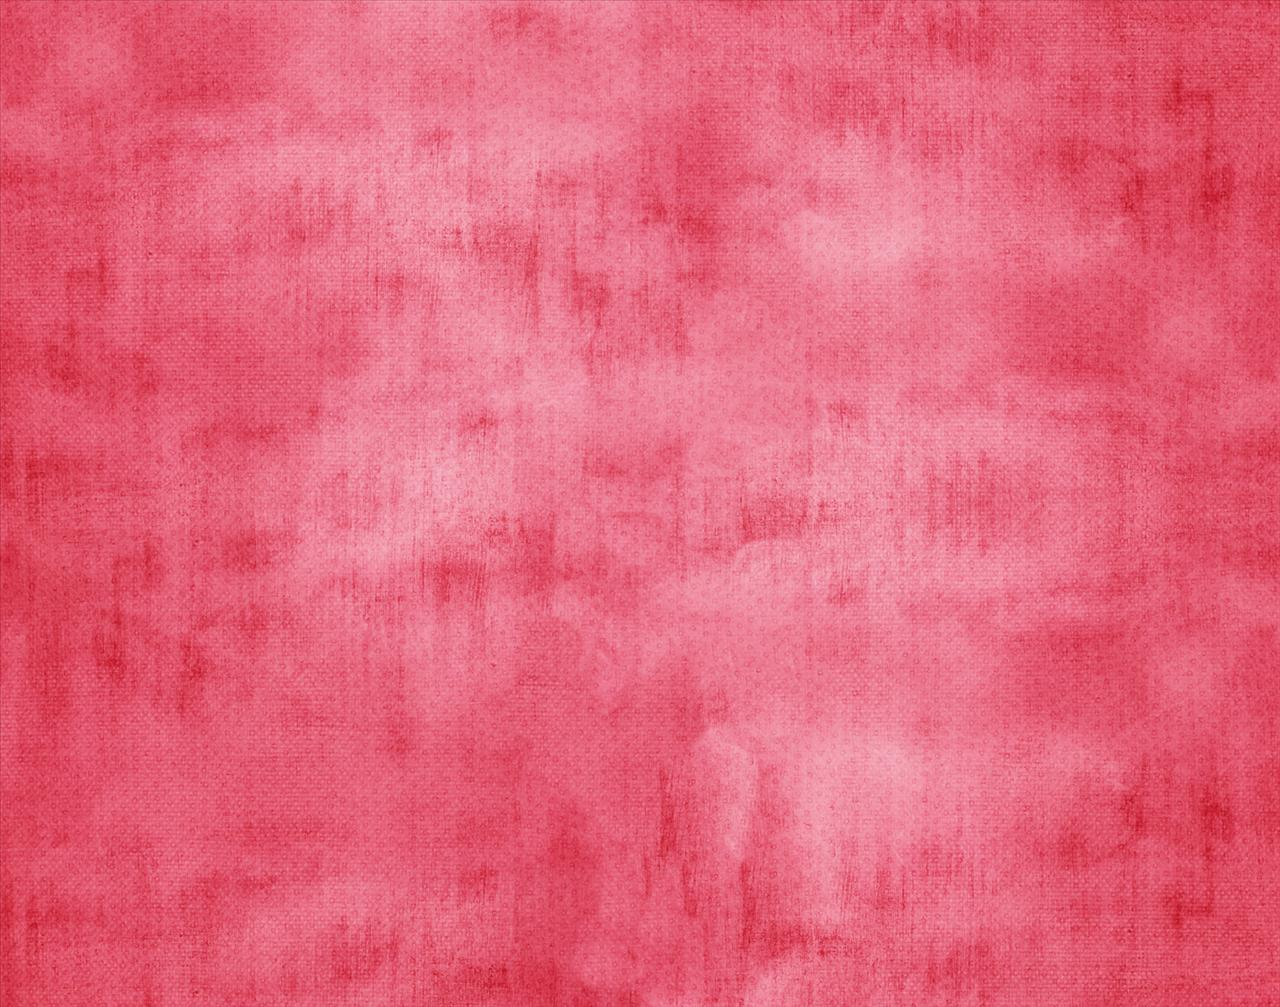 plain pink background Mobile wallpapers 1280x1007